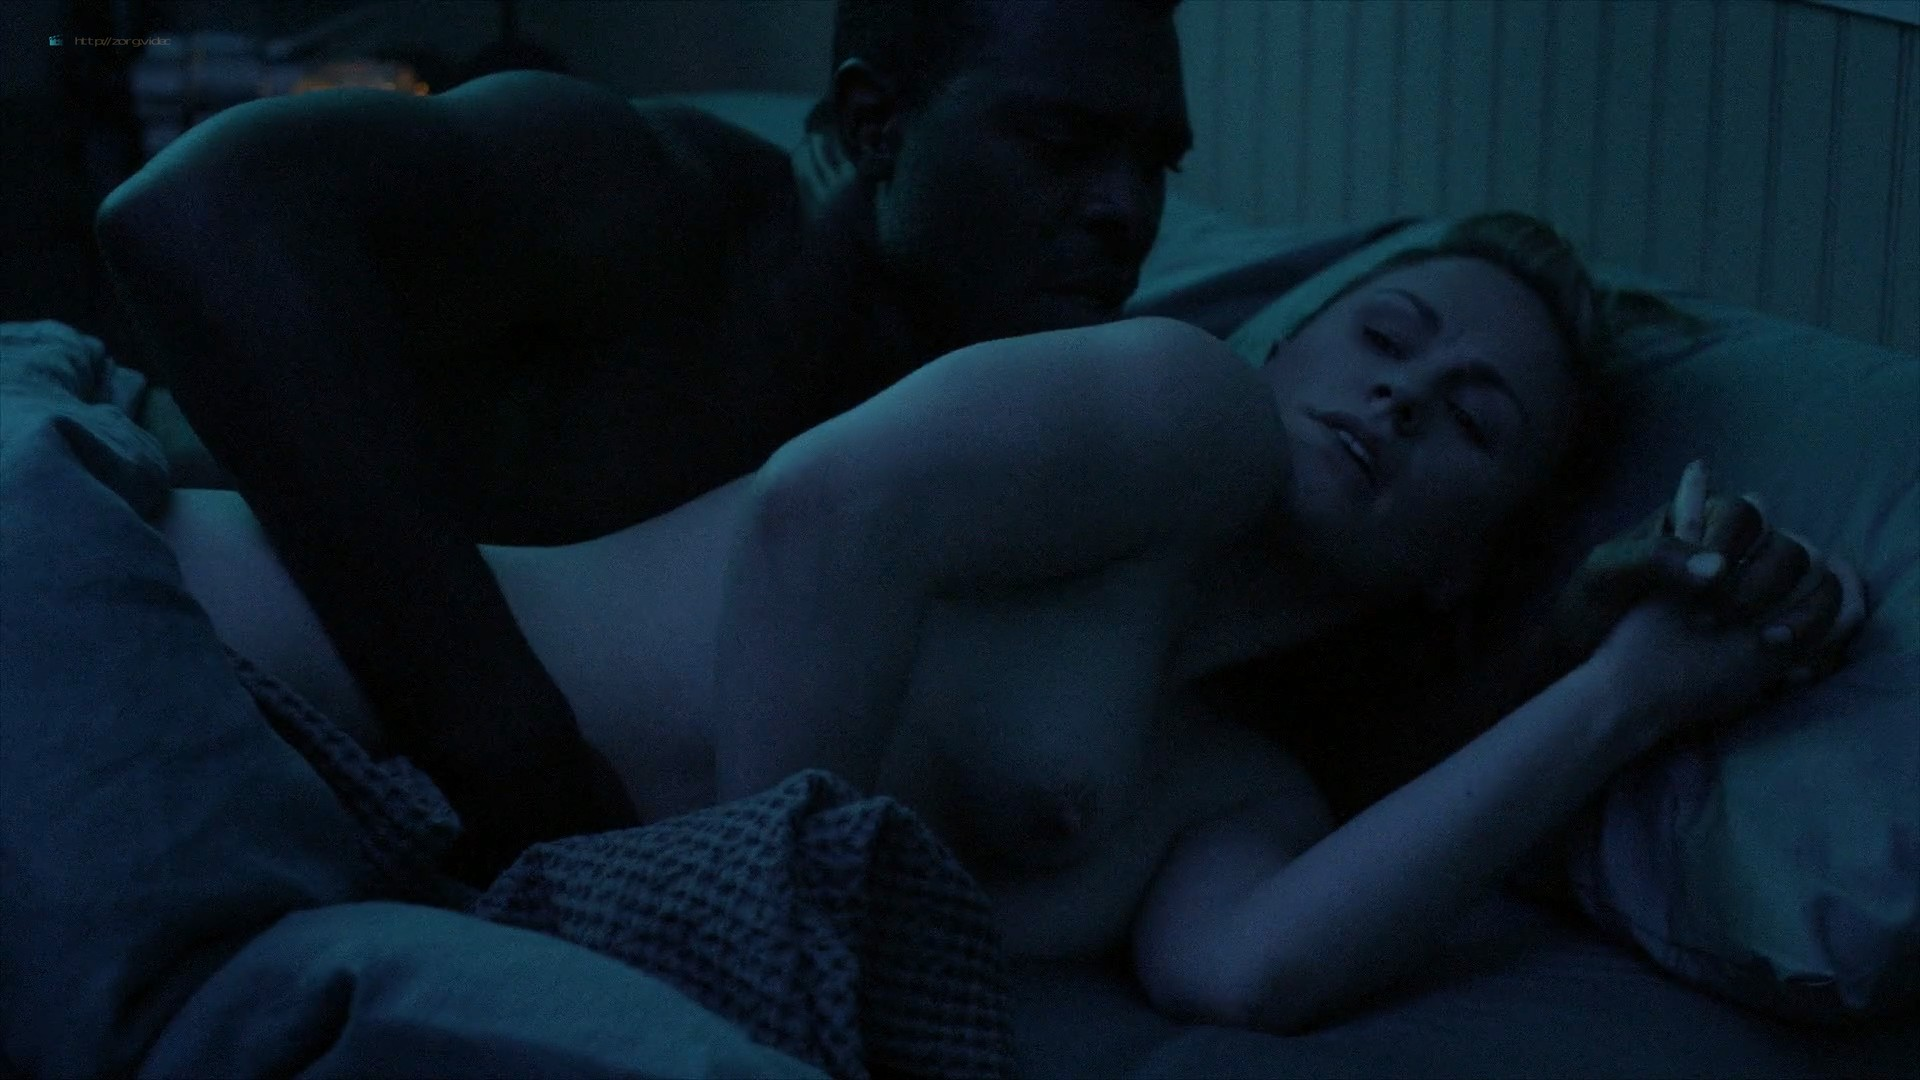 Anna Paquin nude hot sex Maura Tierney nude too- The Affair (2019) s5e1 HD 1080p WEB (5)